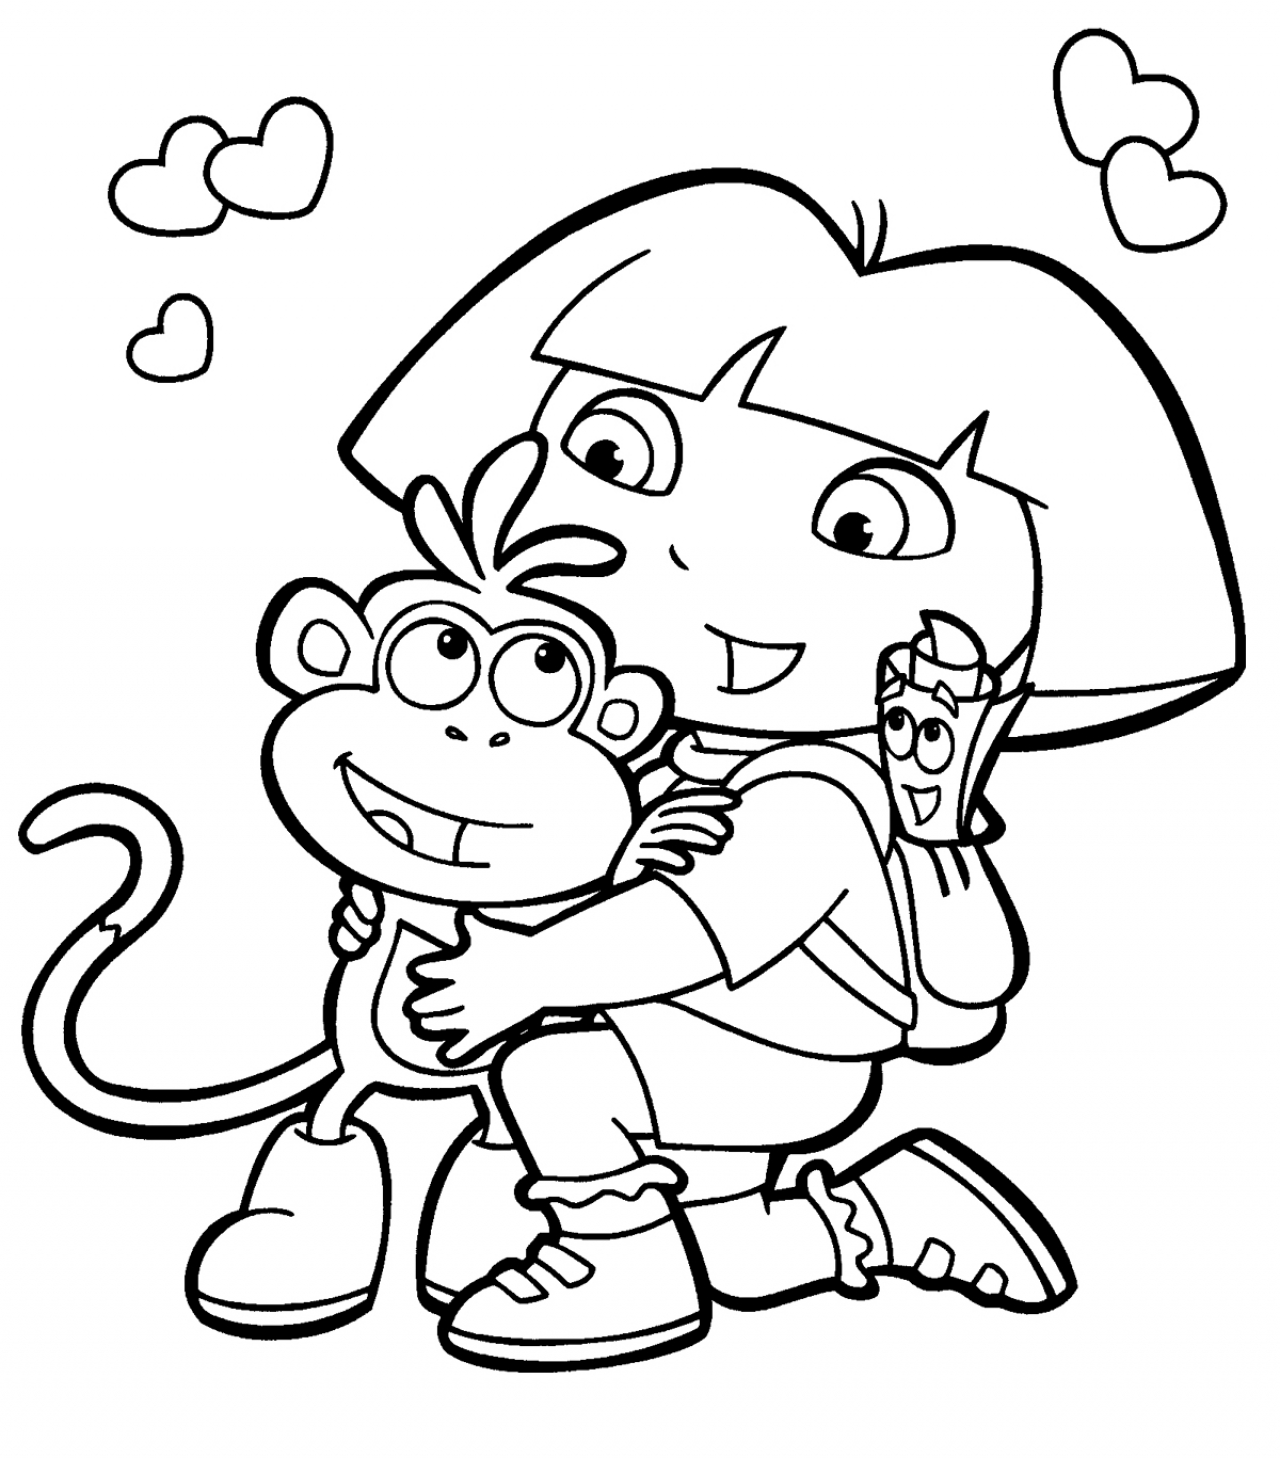 dora-the-explorer-coloring-pages-for-kids